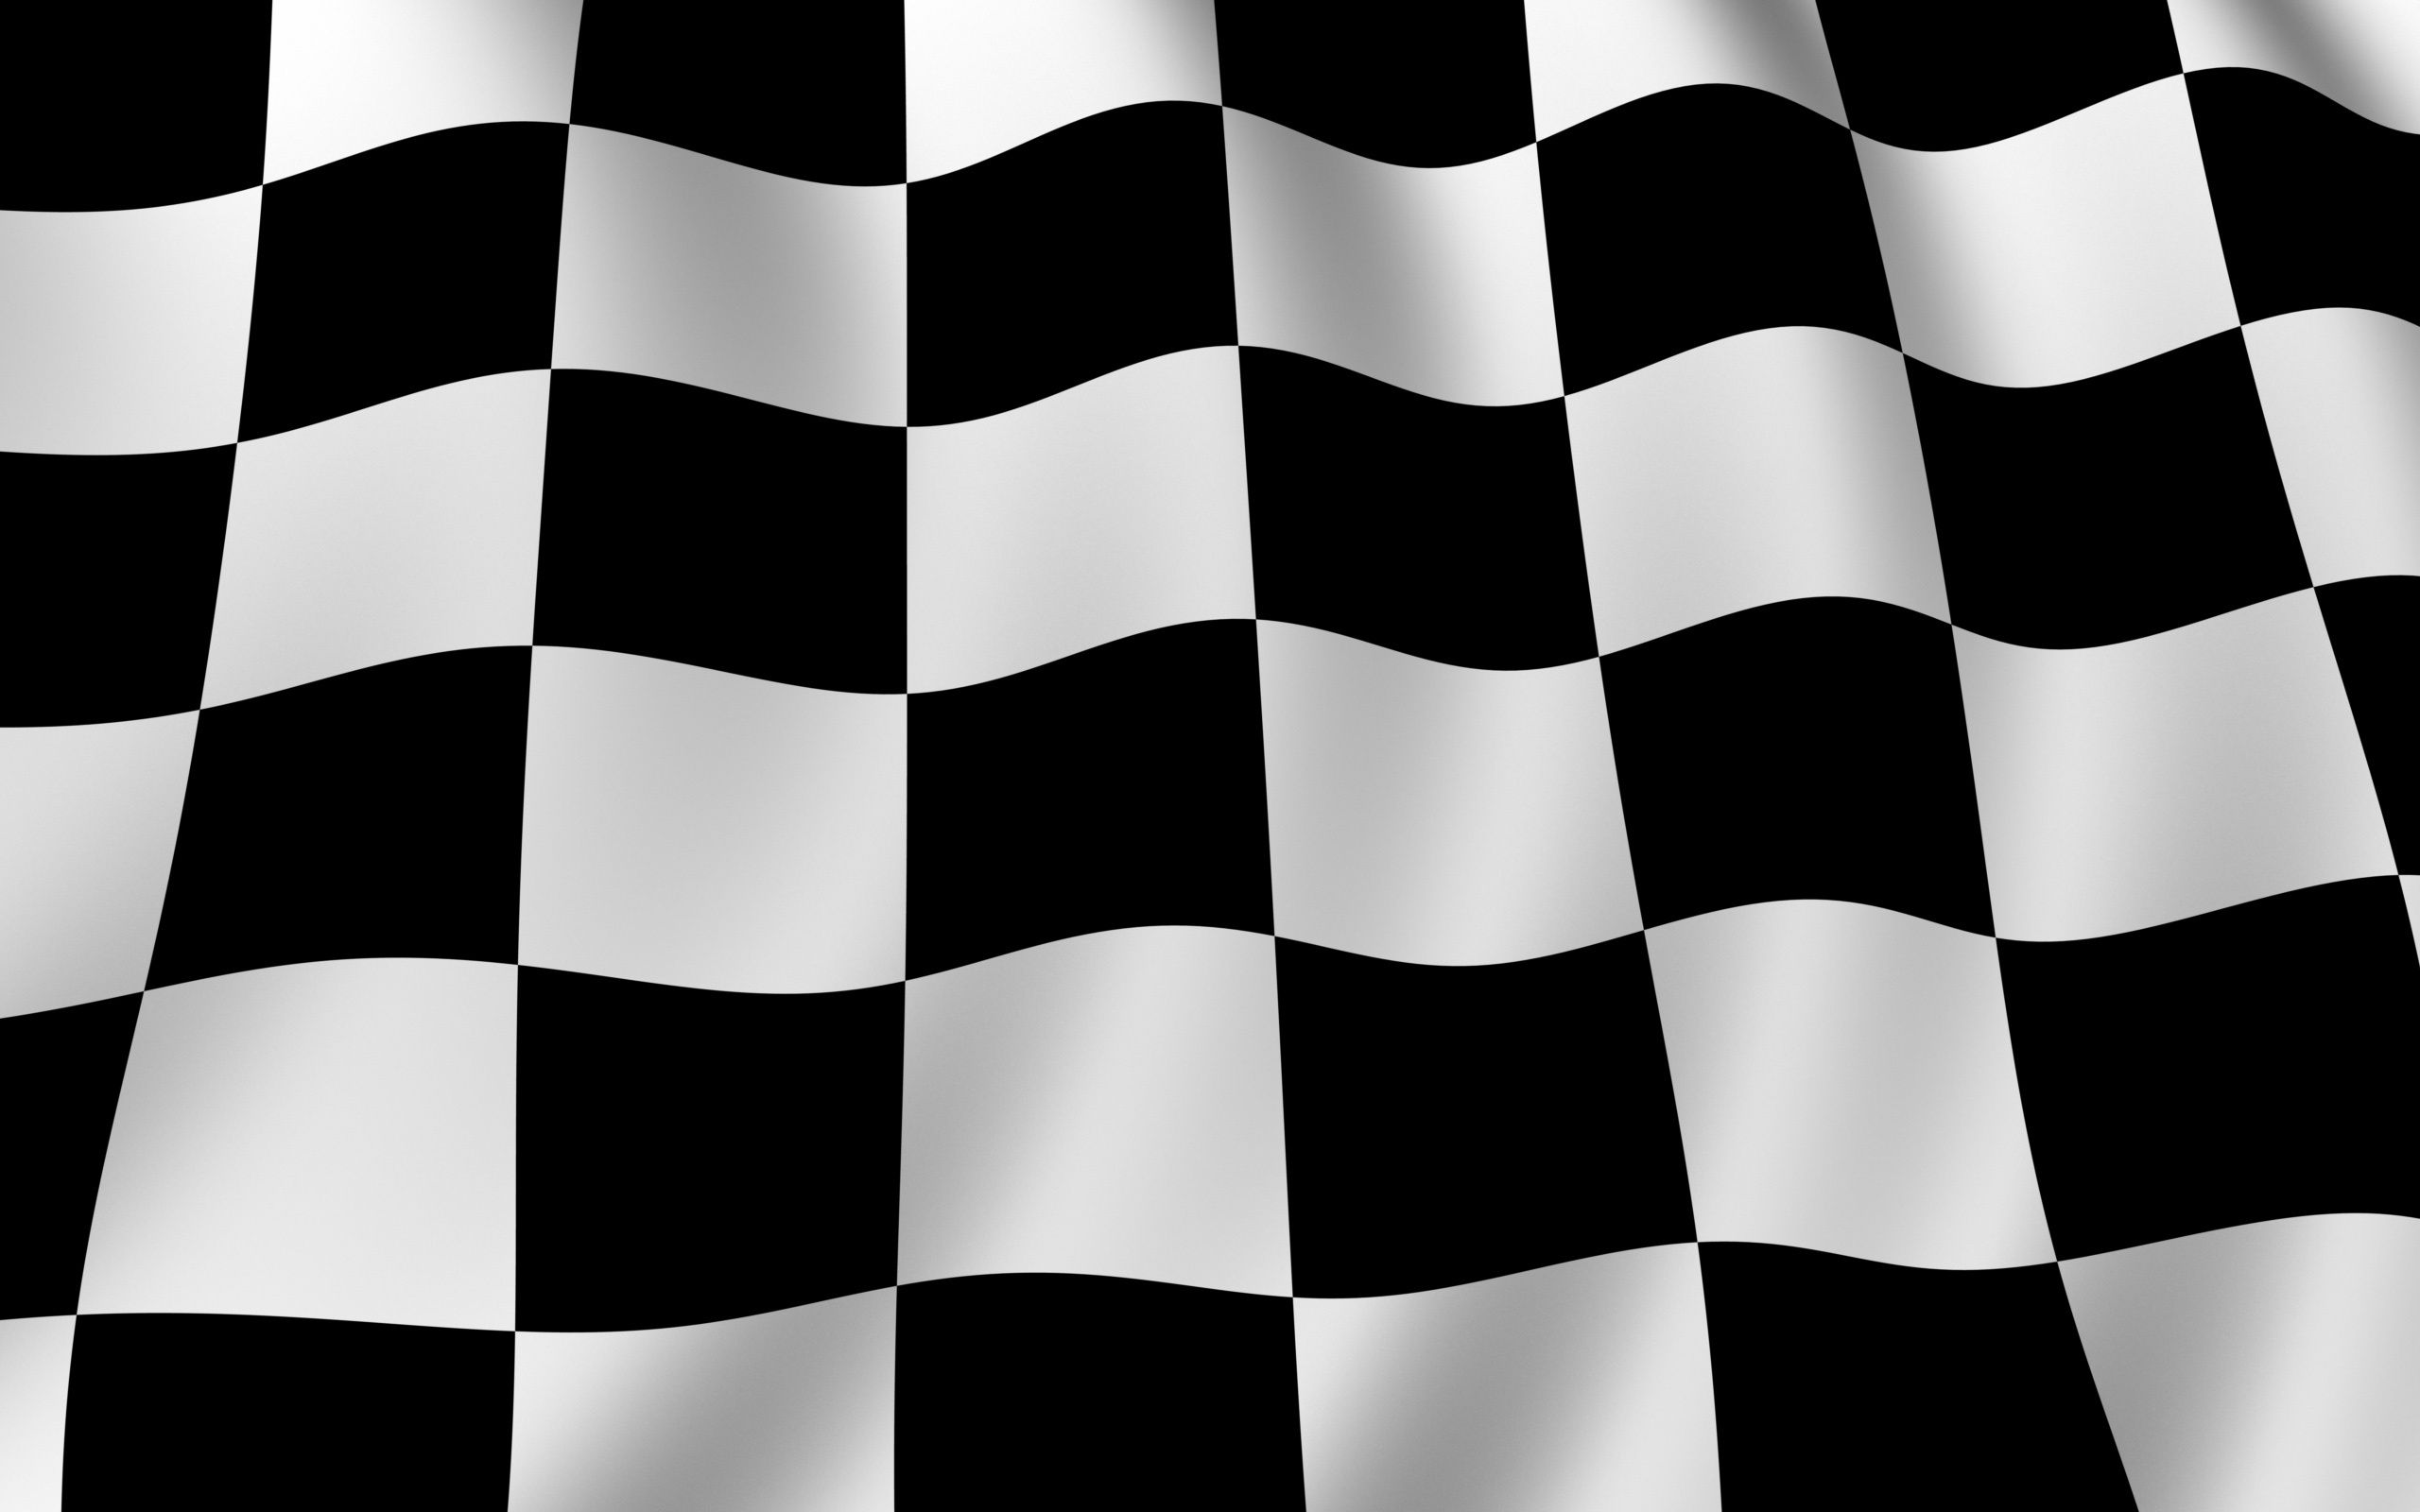 Finish line flag wallpapers top free finish line flag backgrounds wallpaperaccess - Monster high wallpaper border ...